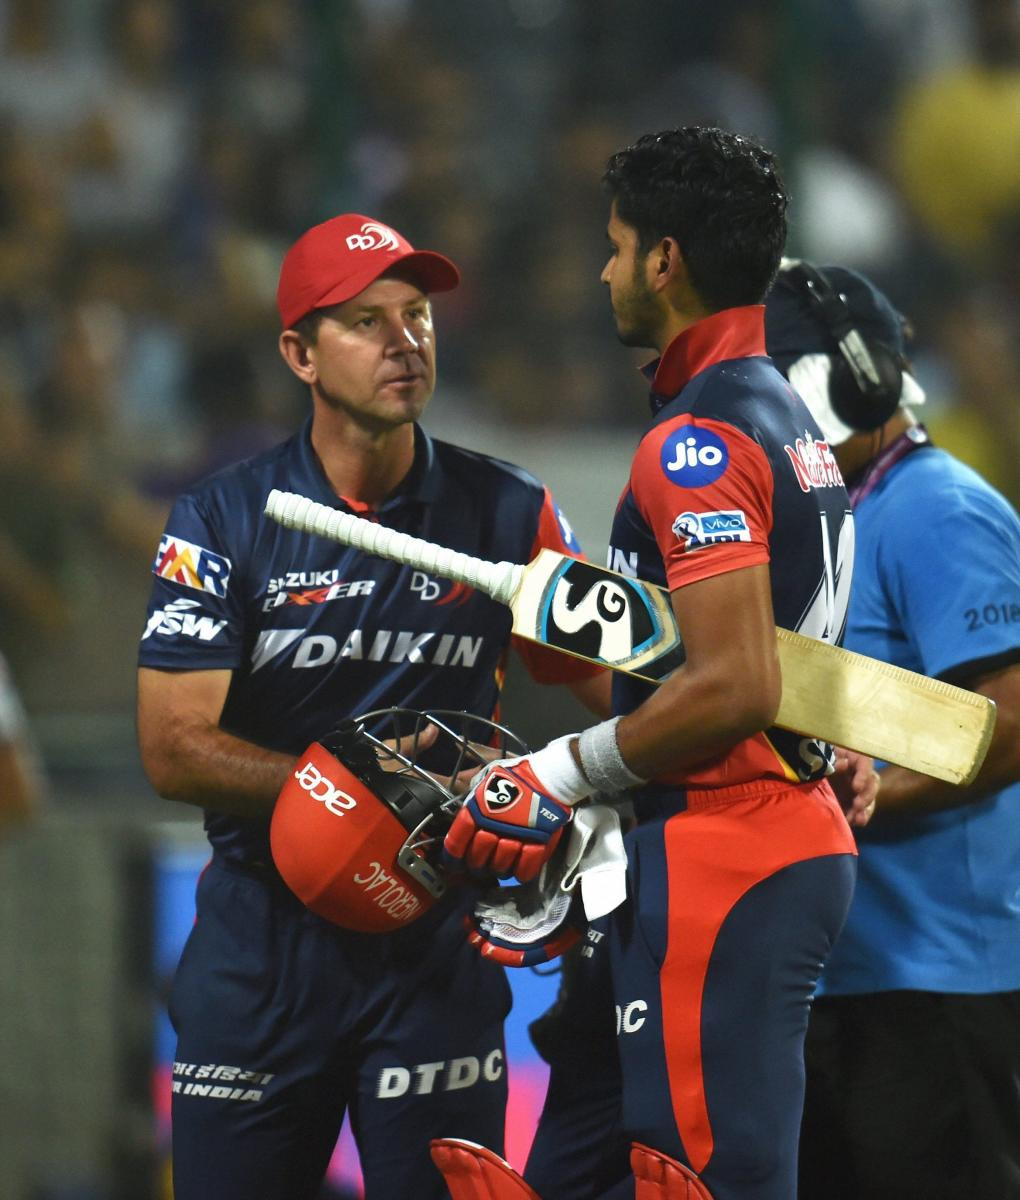 Delhi Daredevils' skipper Shreyas Iyer (right) is greeted by team coach Ricky Ponting during their match against Kolkata Knight Riders in New Delhi, on Friday. PTI